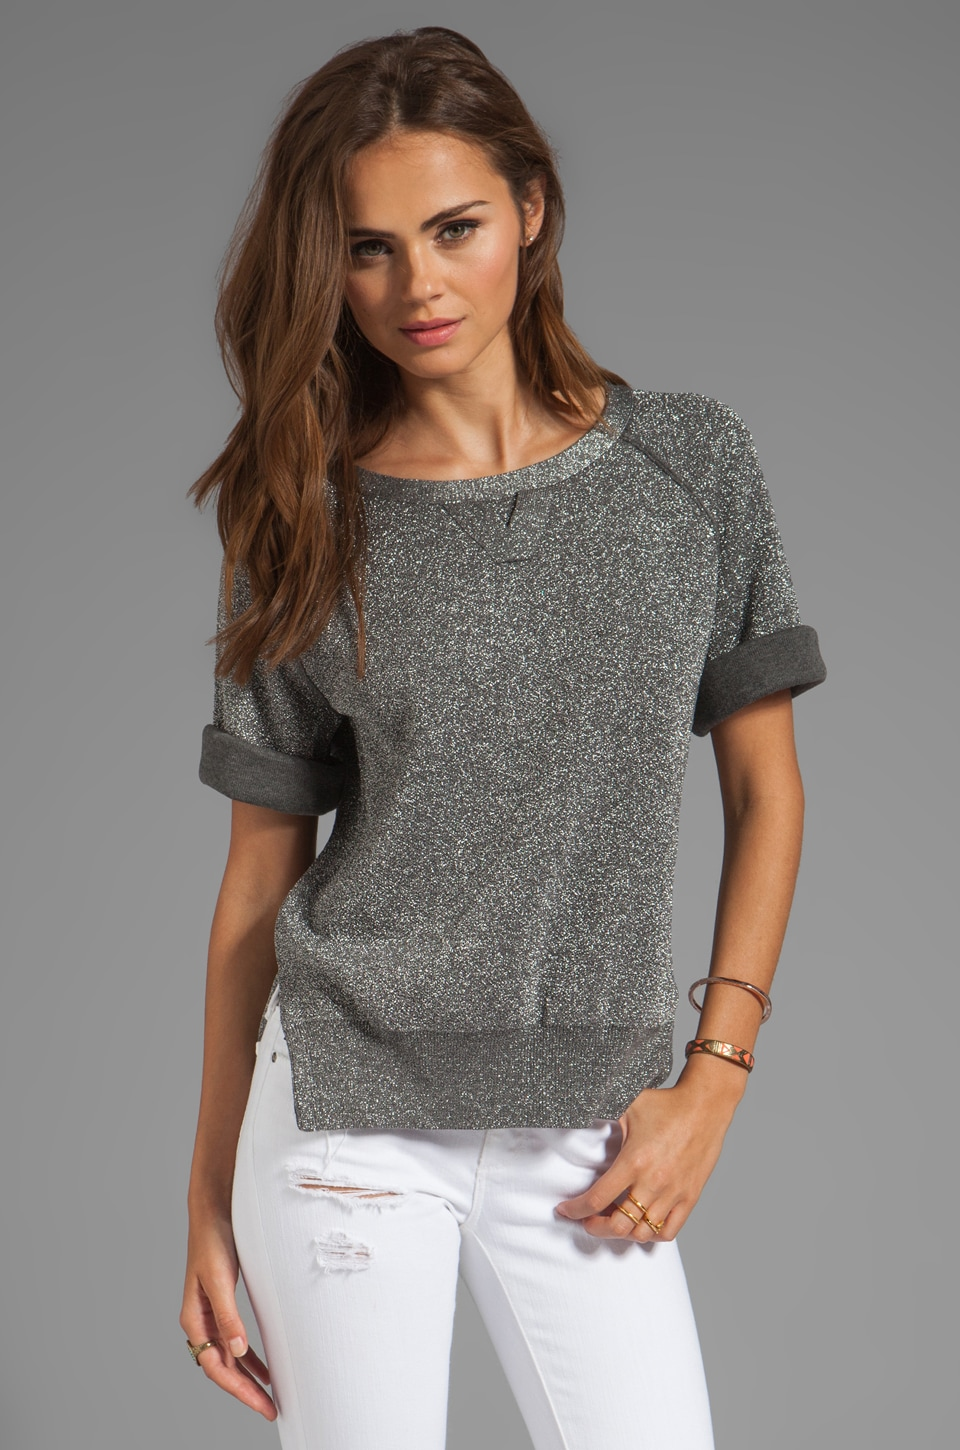 SONIA by Sonia Rykiel Cotton and Lurex Short Sleeve Sweater in Grey/Silver